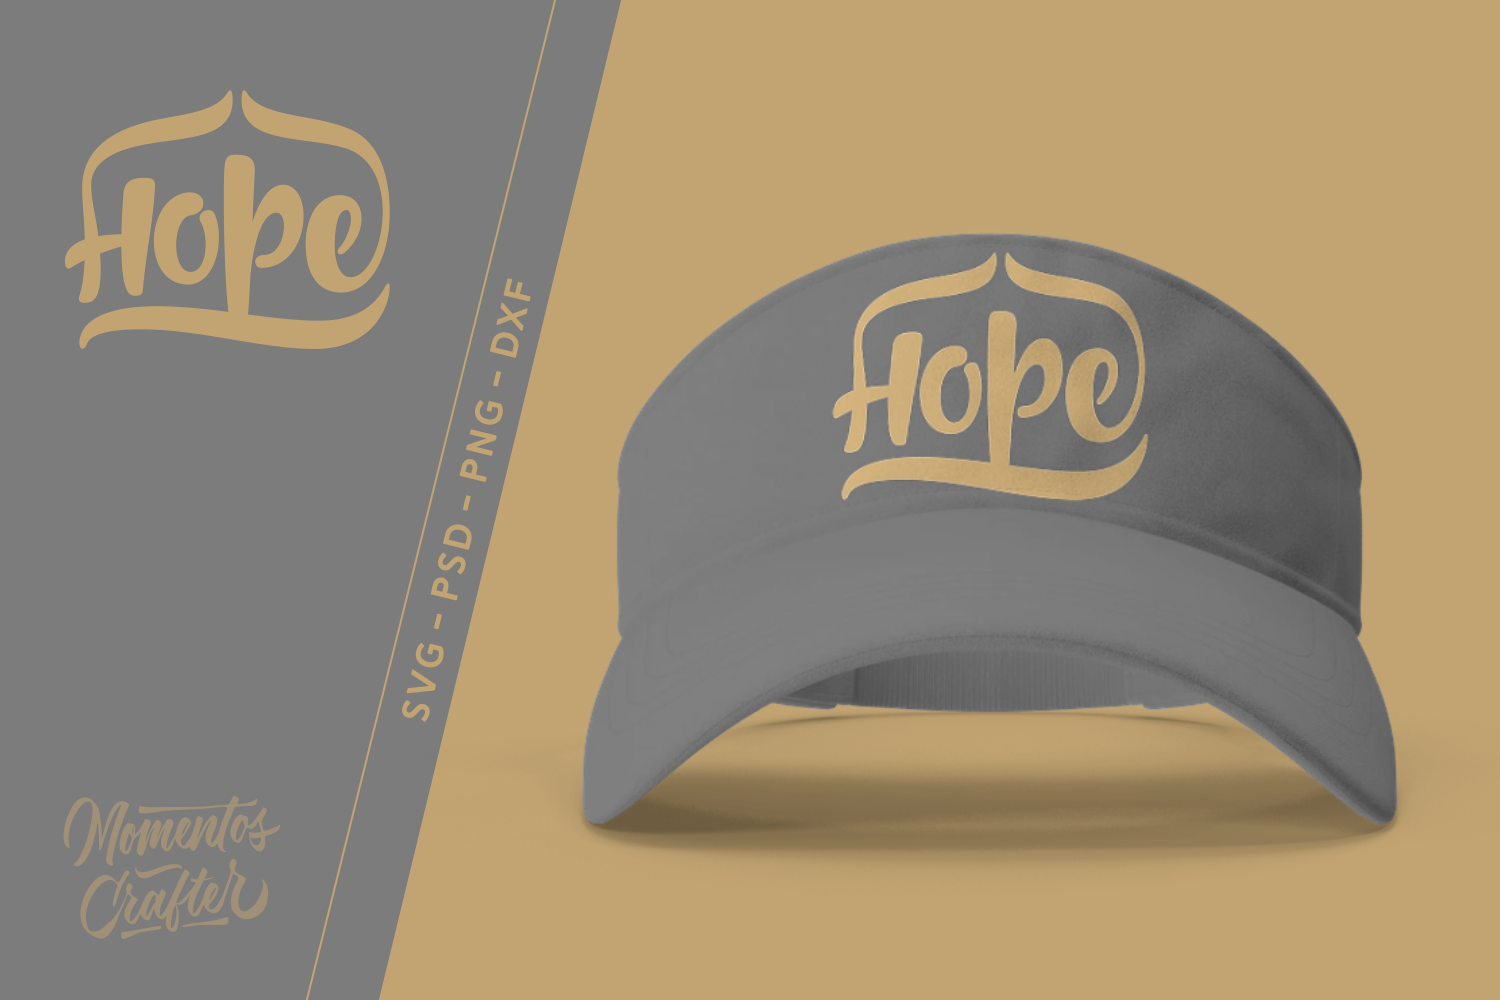 Download Free Hope Graphic By Momentos Crafter Creative Fabrica for Cricut Explore, Silhouette and other cutting machines.